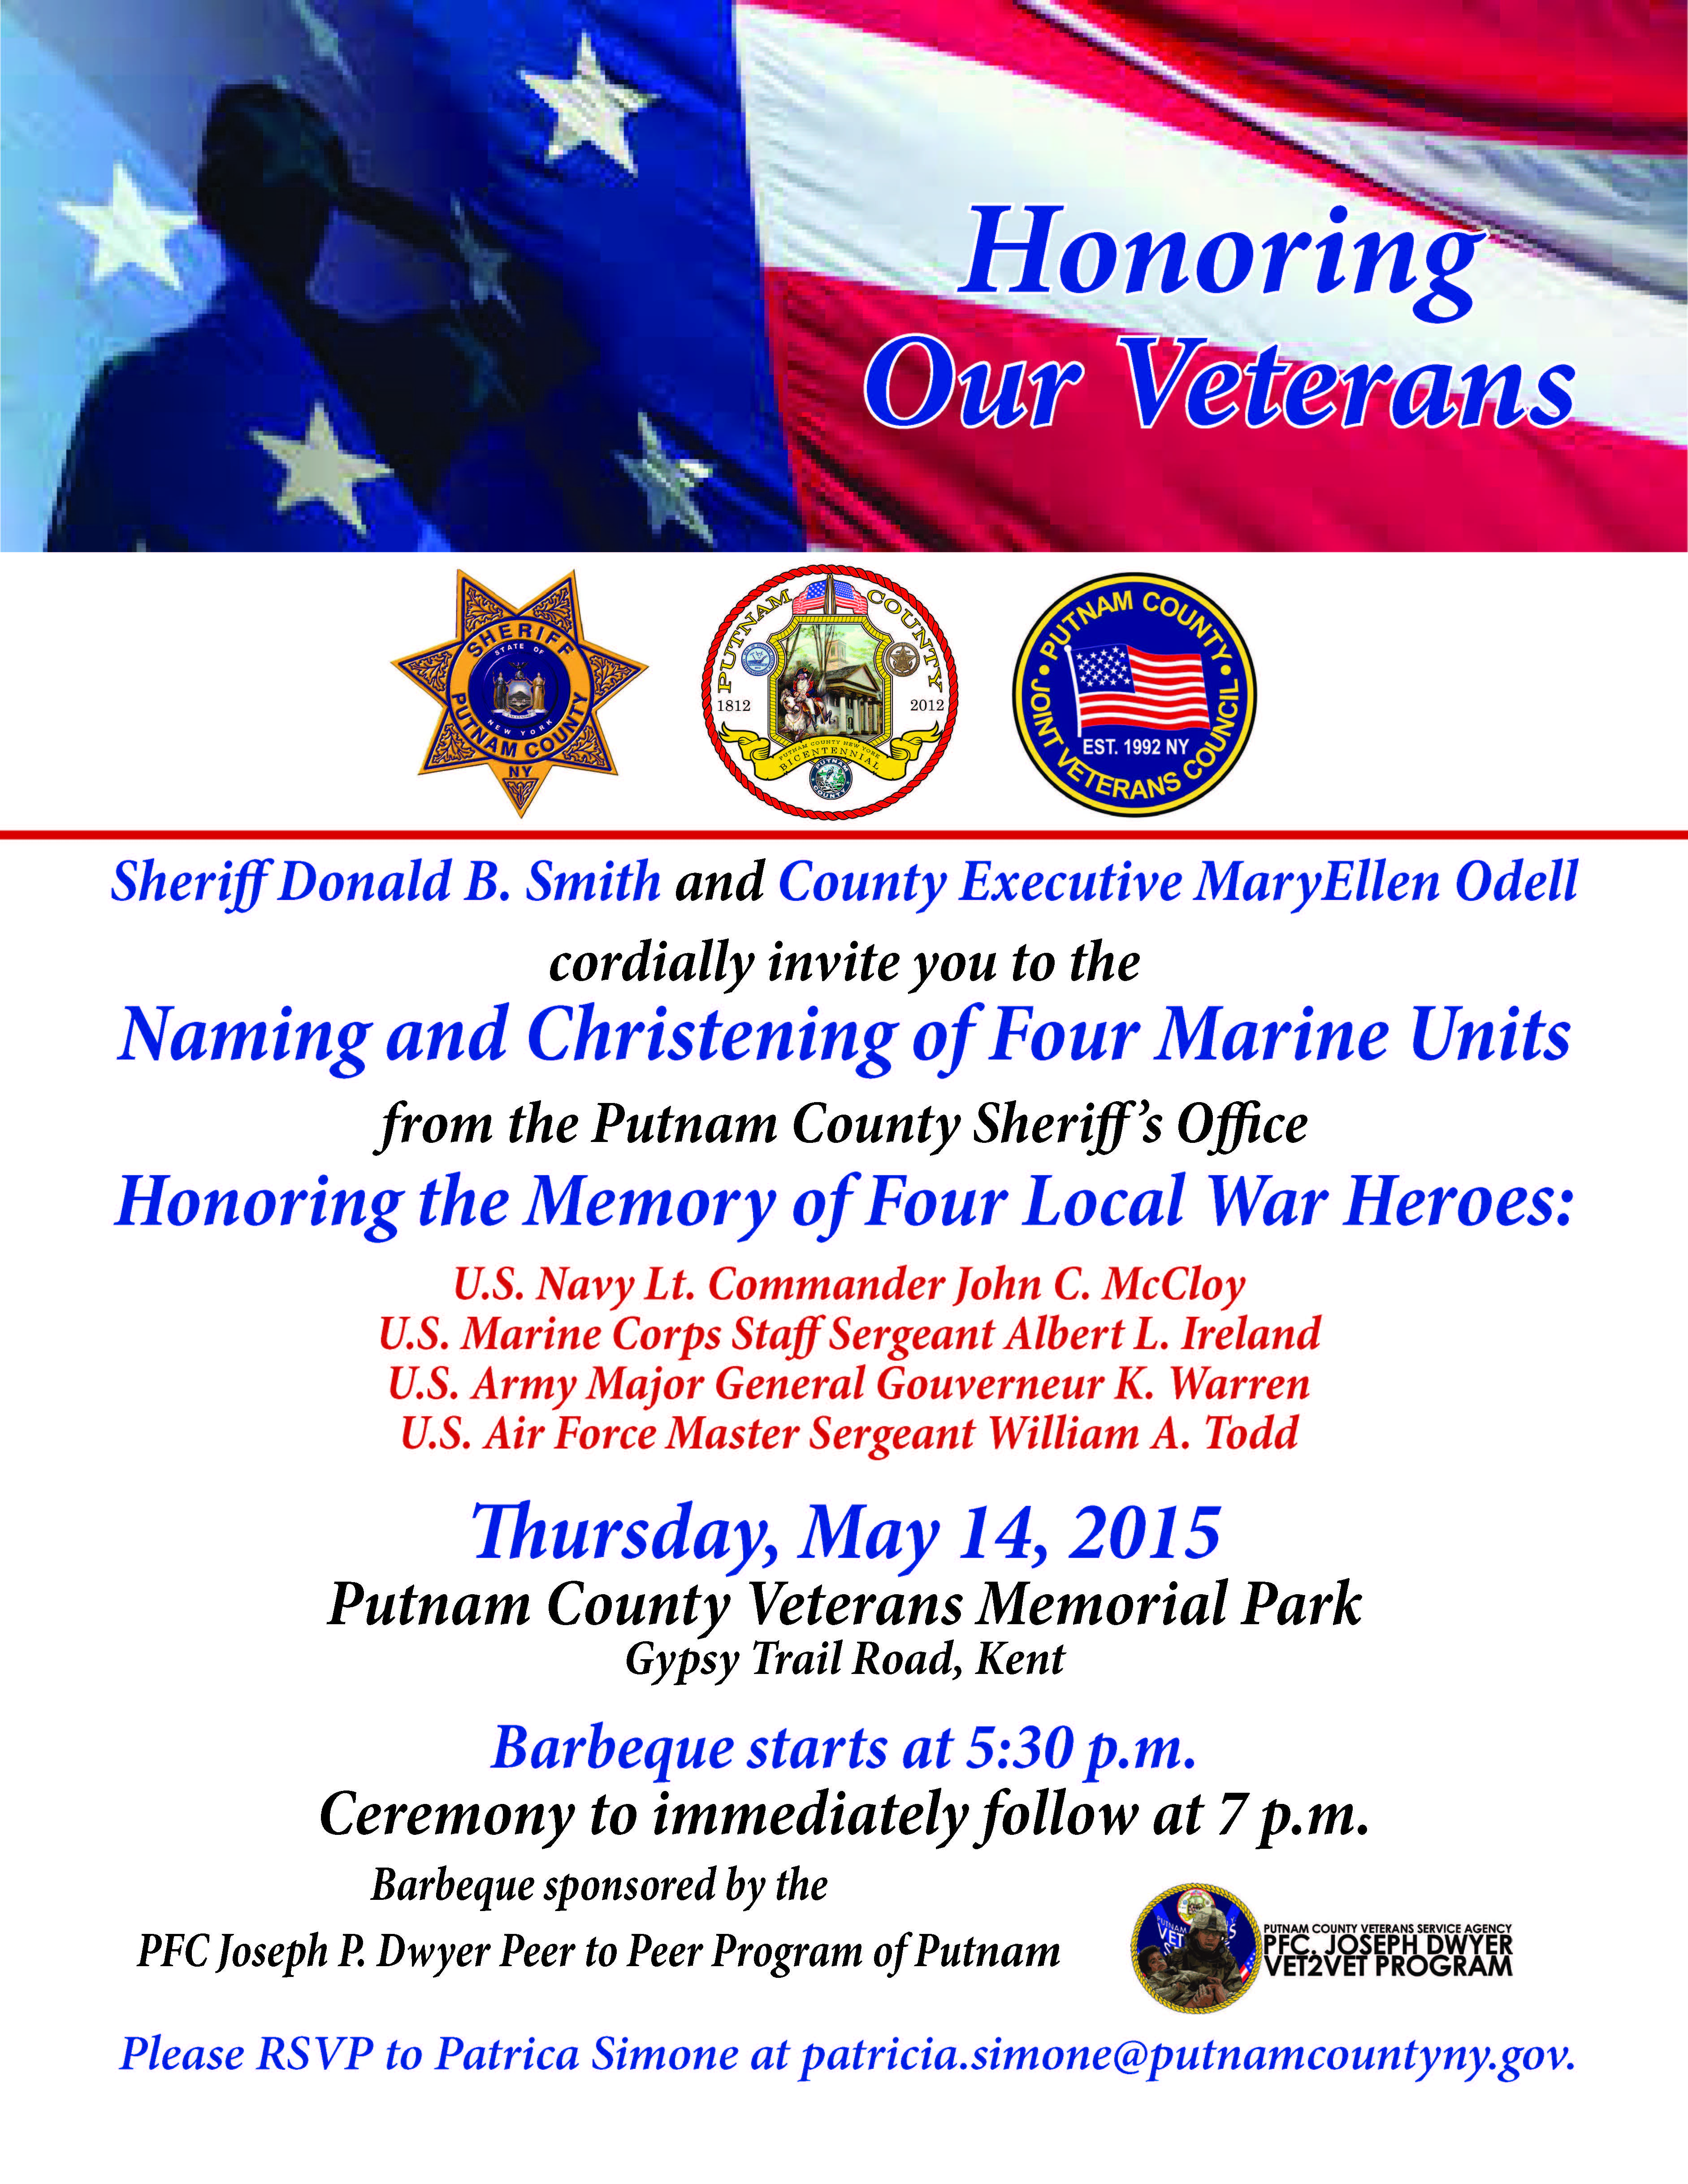 CHRISTENING OF SHERIFF'S PATROL BOATS TO HONOR FOUR LOCAL WAR HEROES